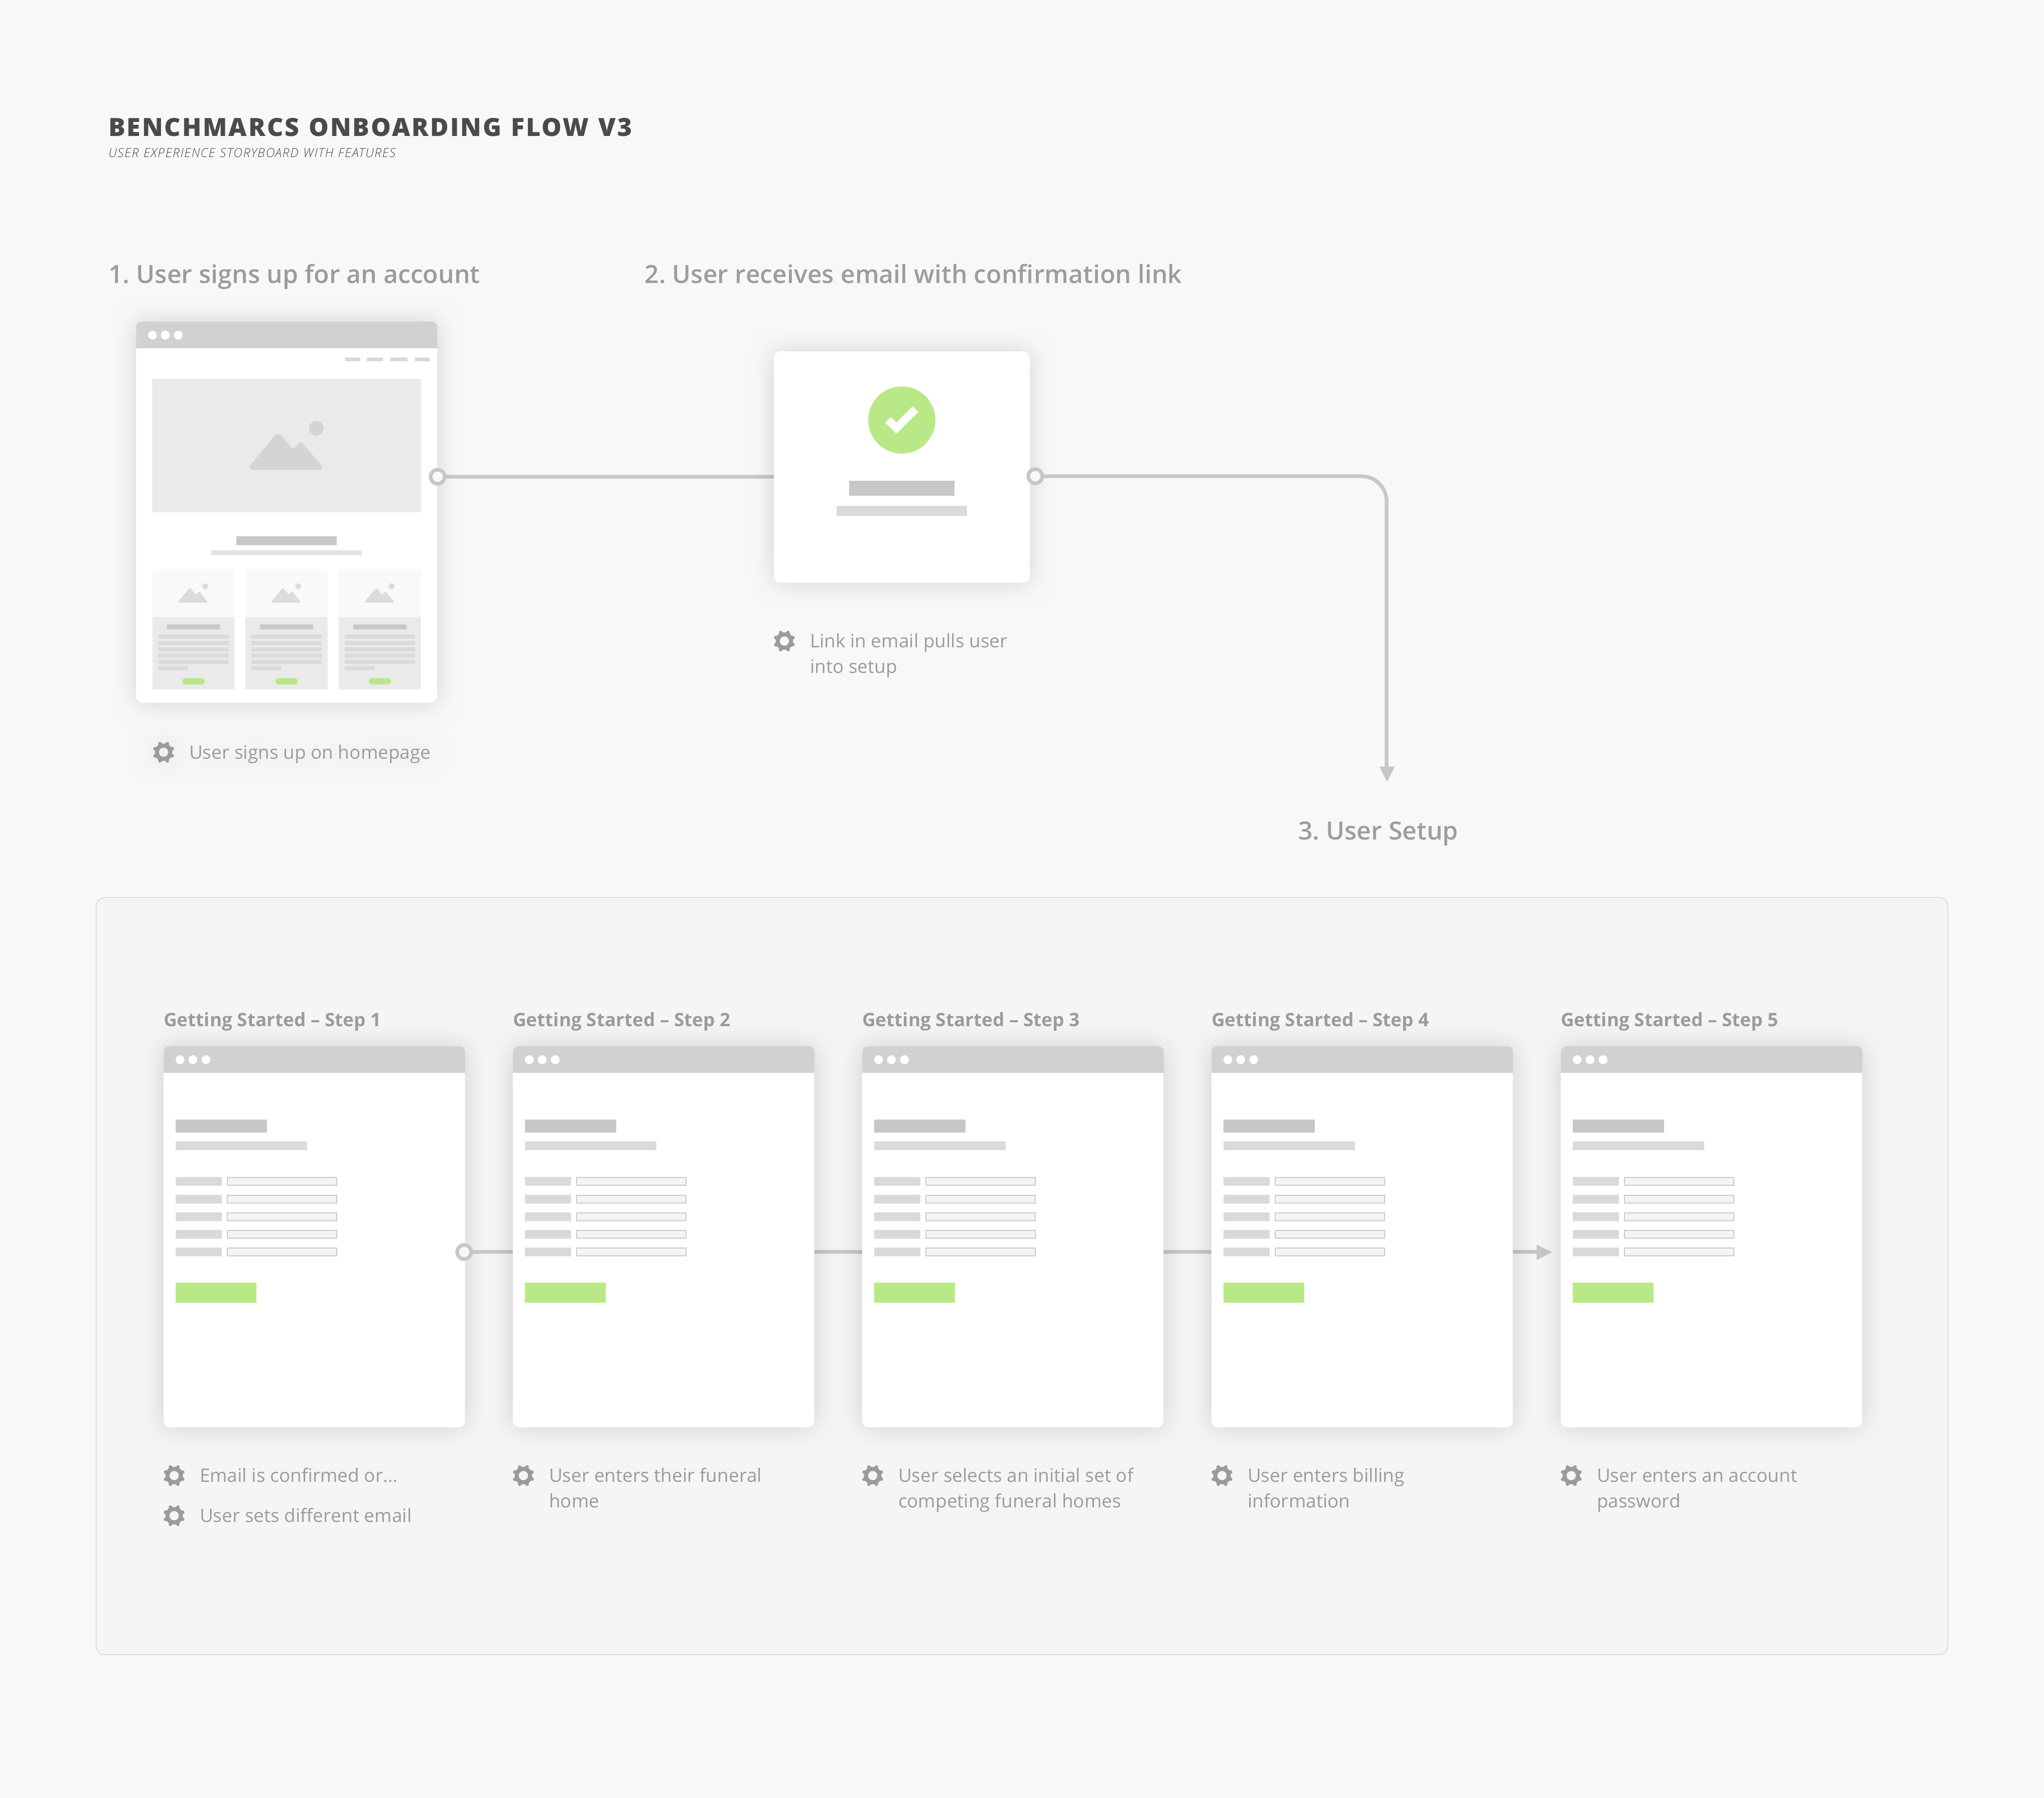 Benchmarcs Onboarding User Flow